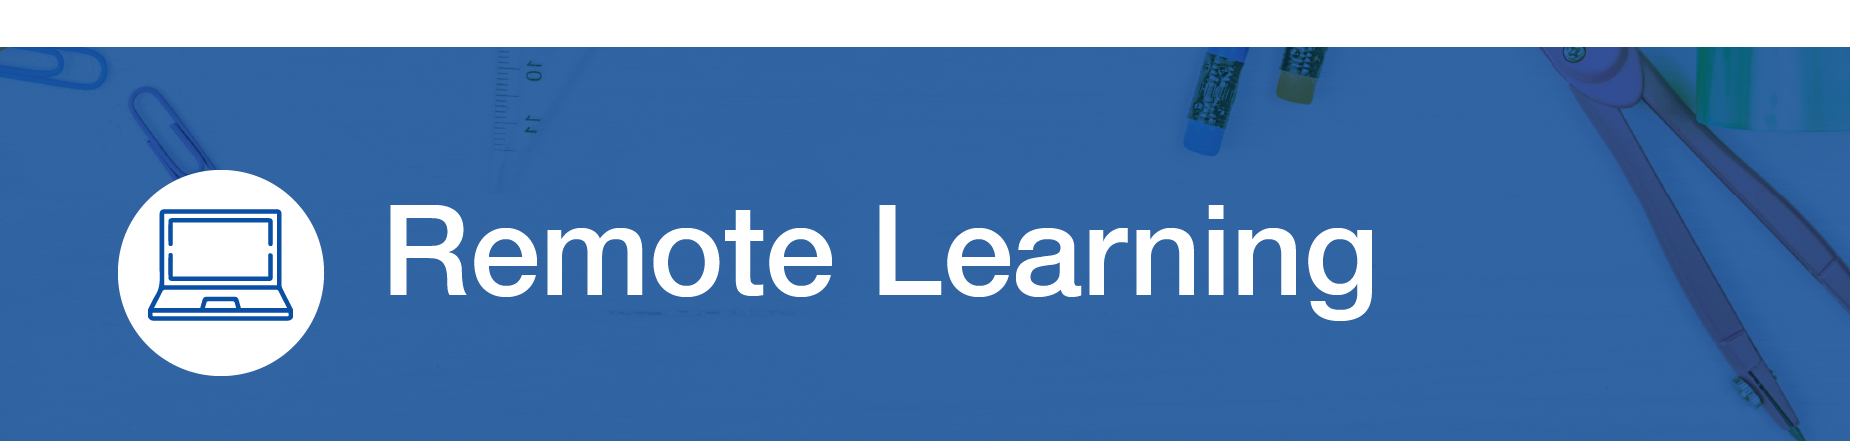 Remote Learning banner